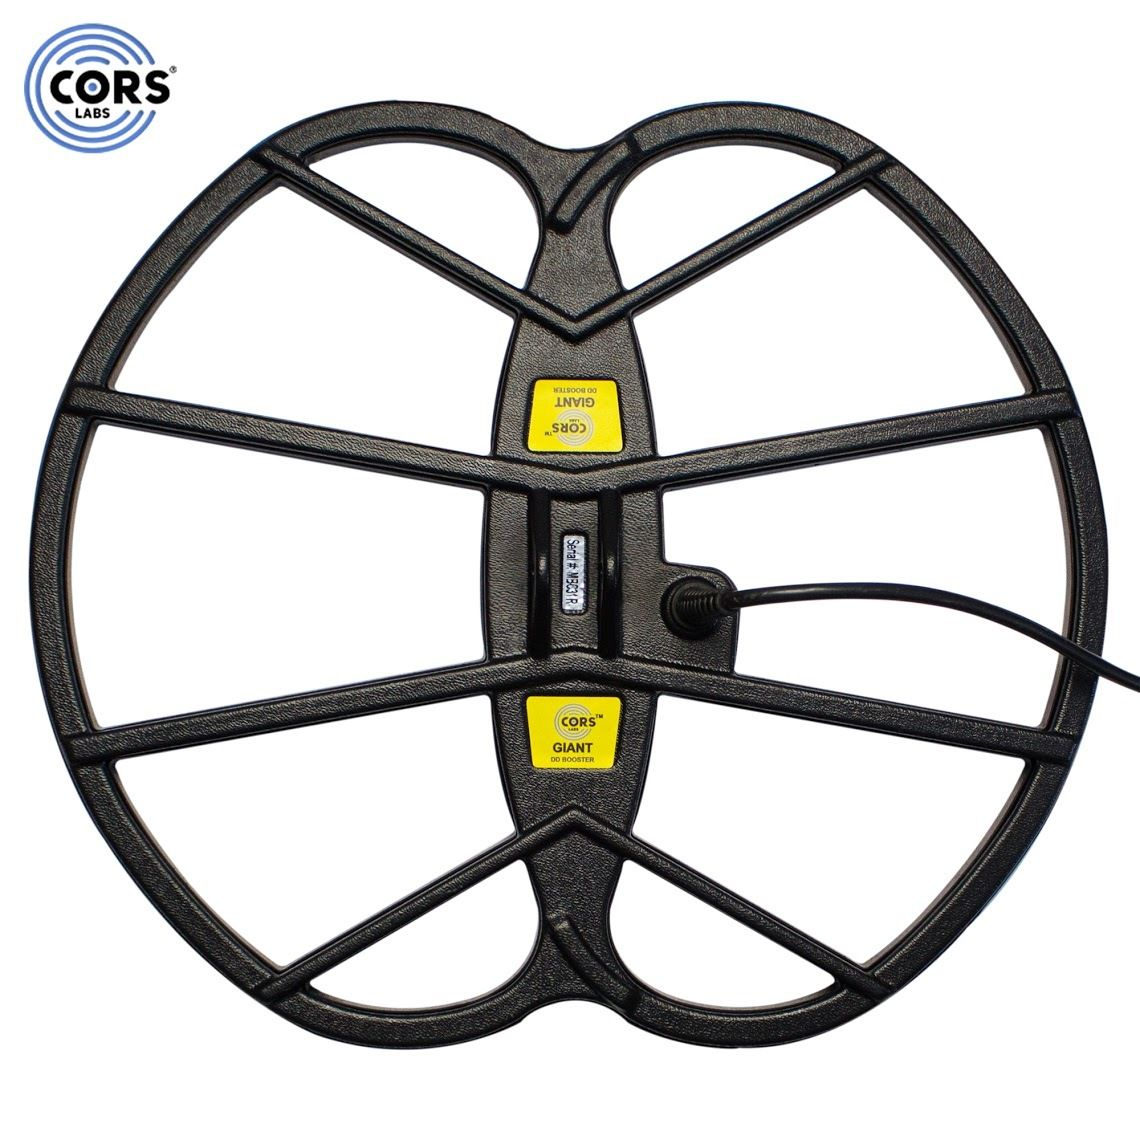 """CORS Giant 15""""x17"""" DD Search Coil for Tesoro Delta Series Metal Detector"""